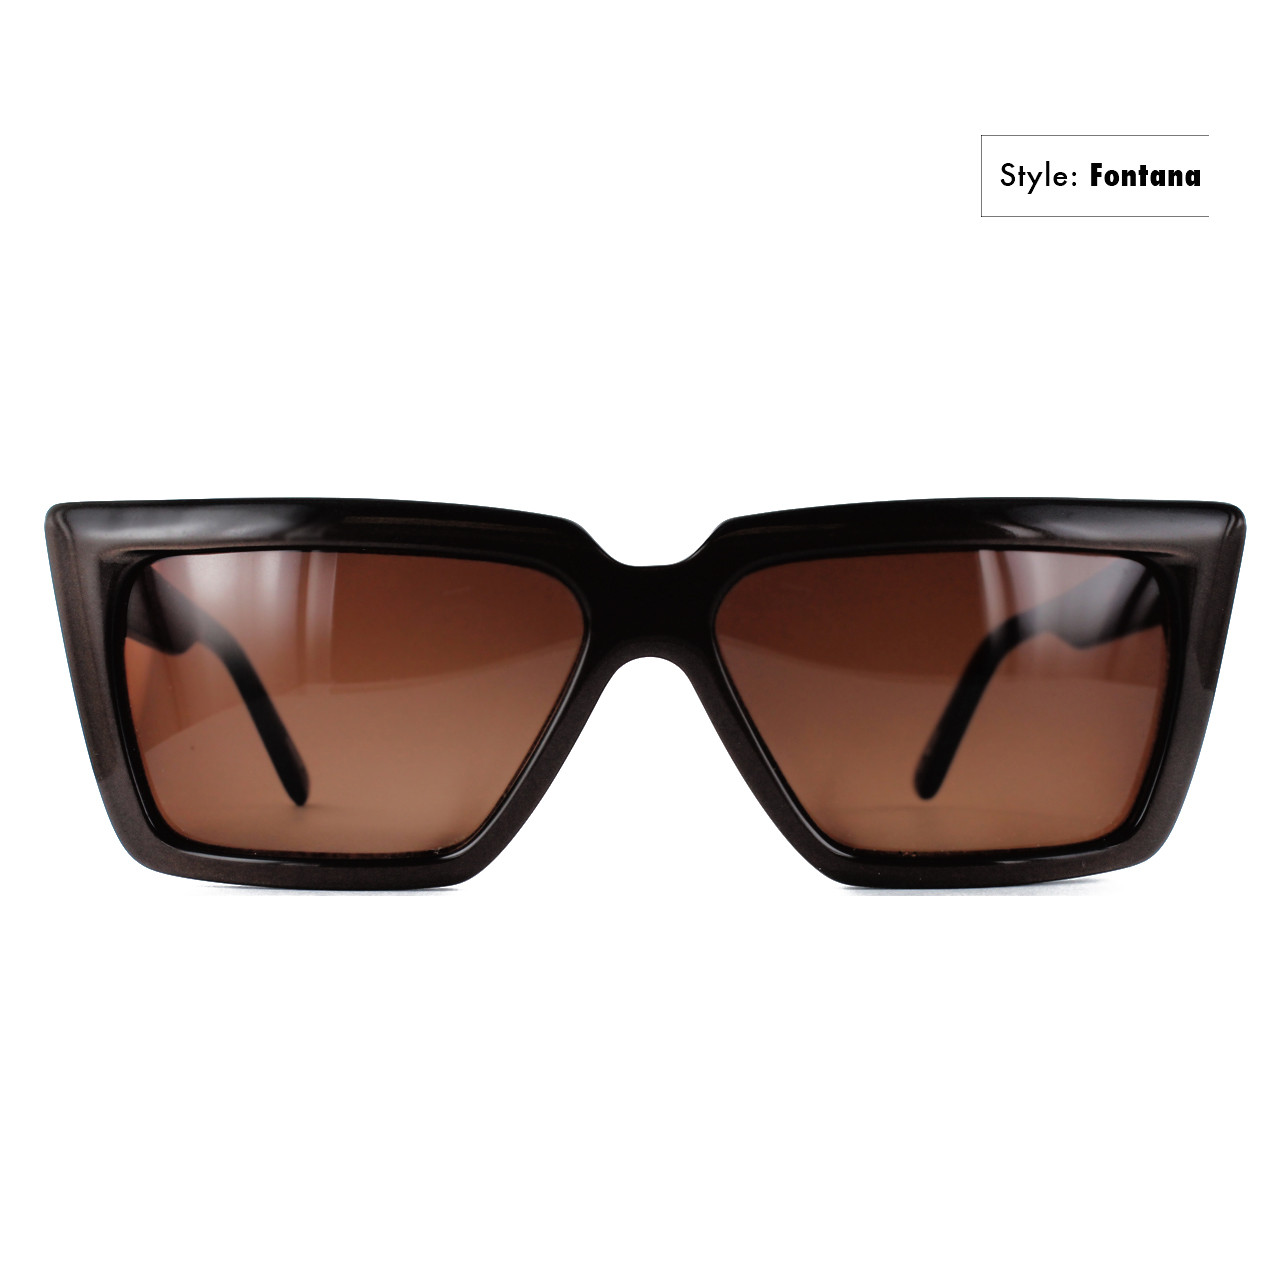 GEEK Eyewear GEEK FONTANA Sunglass in Black